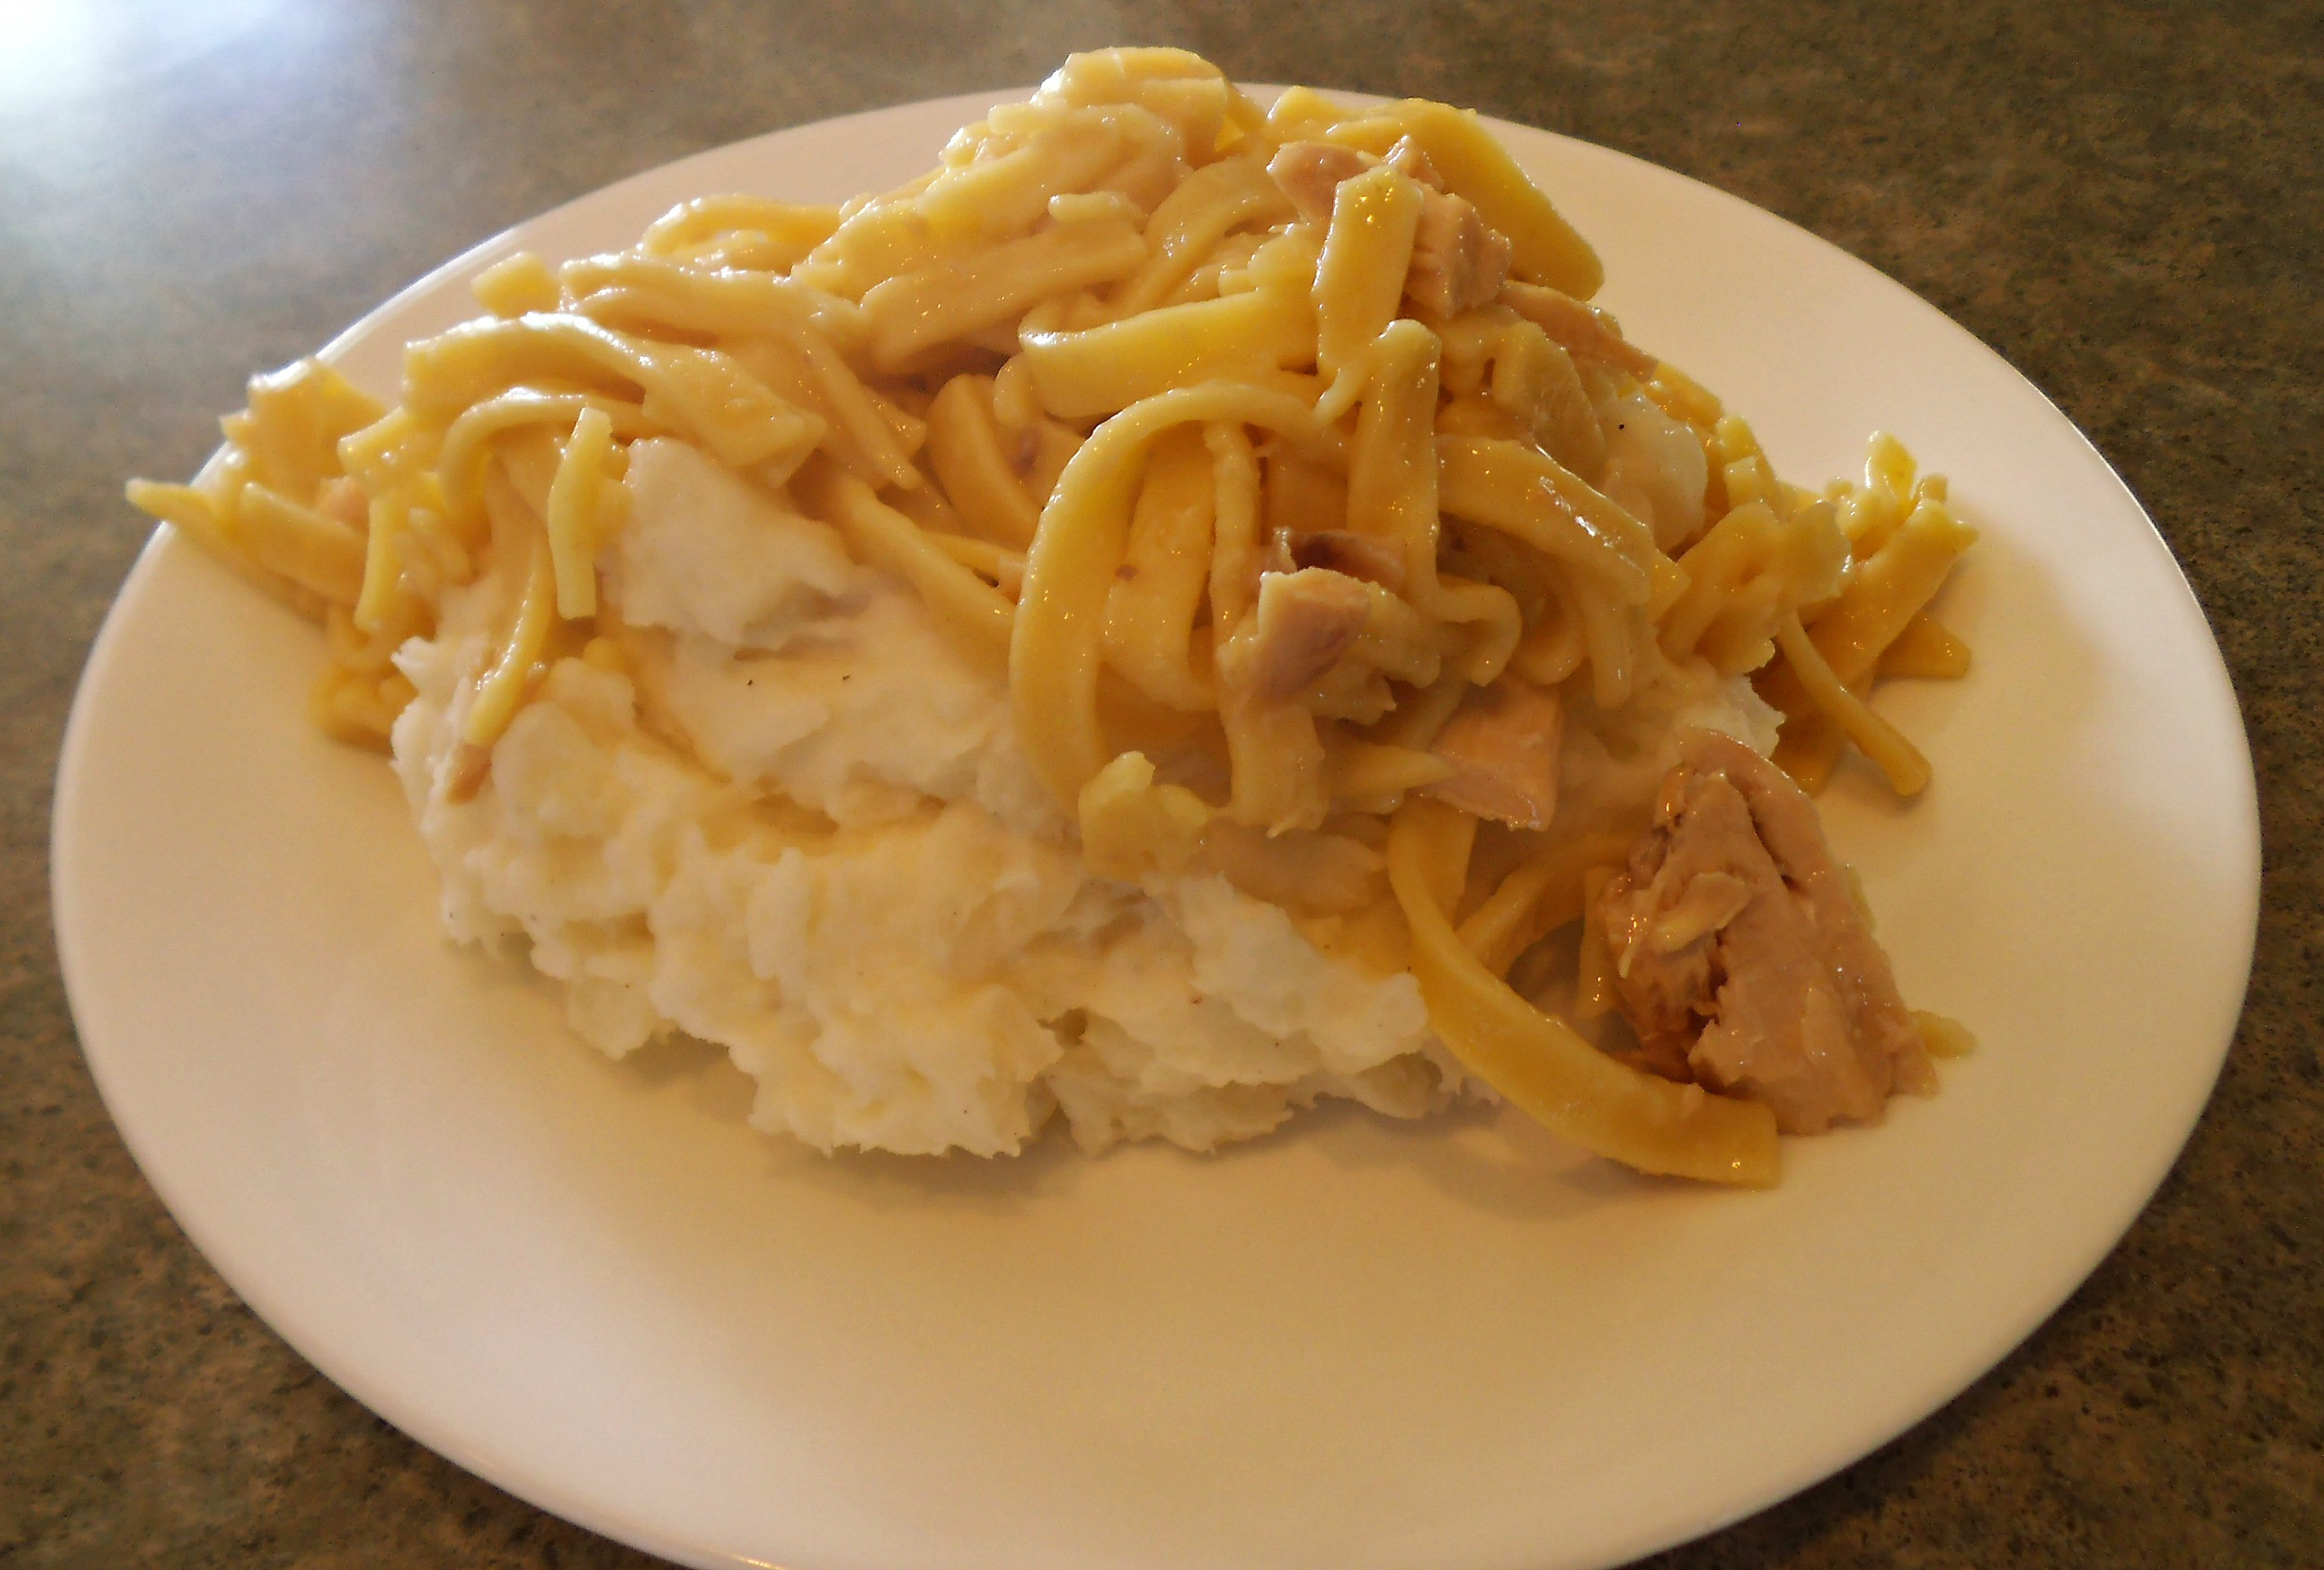 Chicken And Noodles Over Mashed Potatoes  Amish Chicken and Noodles with Jan Drexler Amish Wisdom